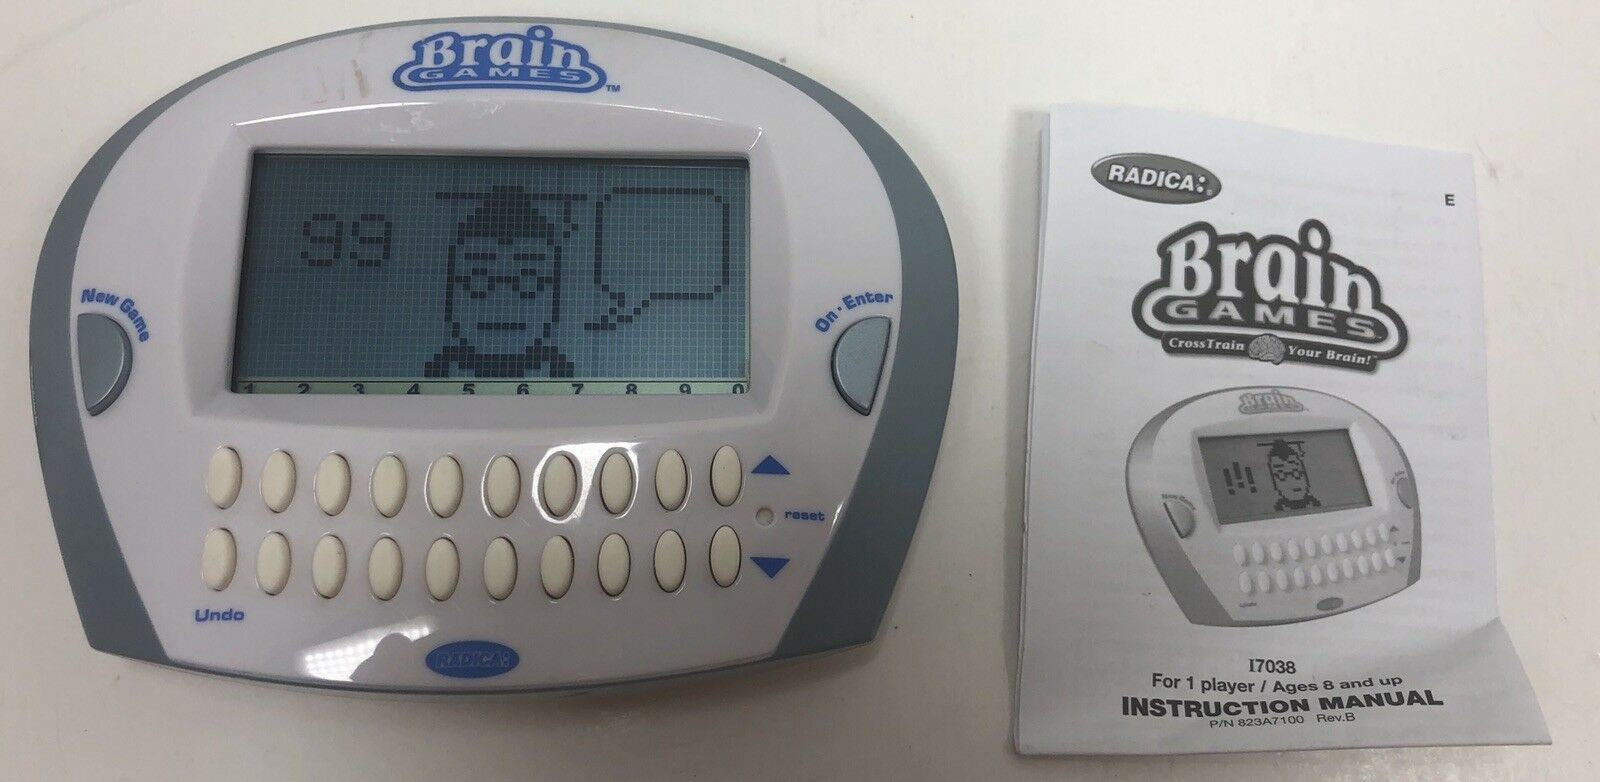 Radica Brain Games Electronic Handheld Game Improve Memory Brain Health